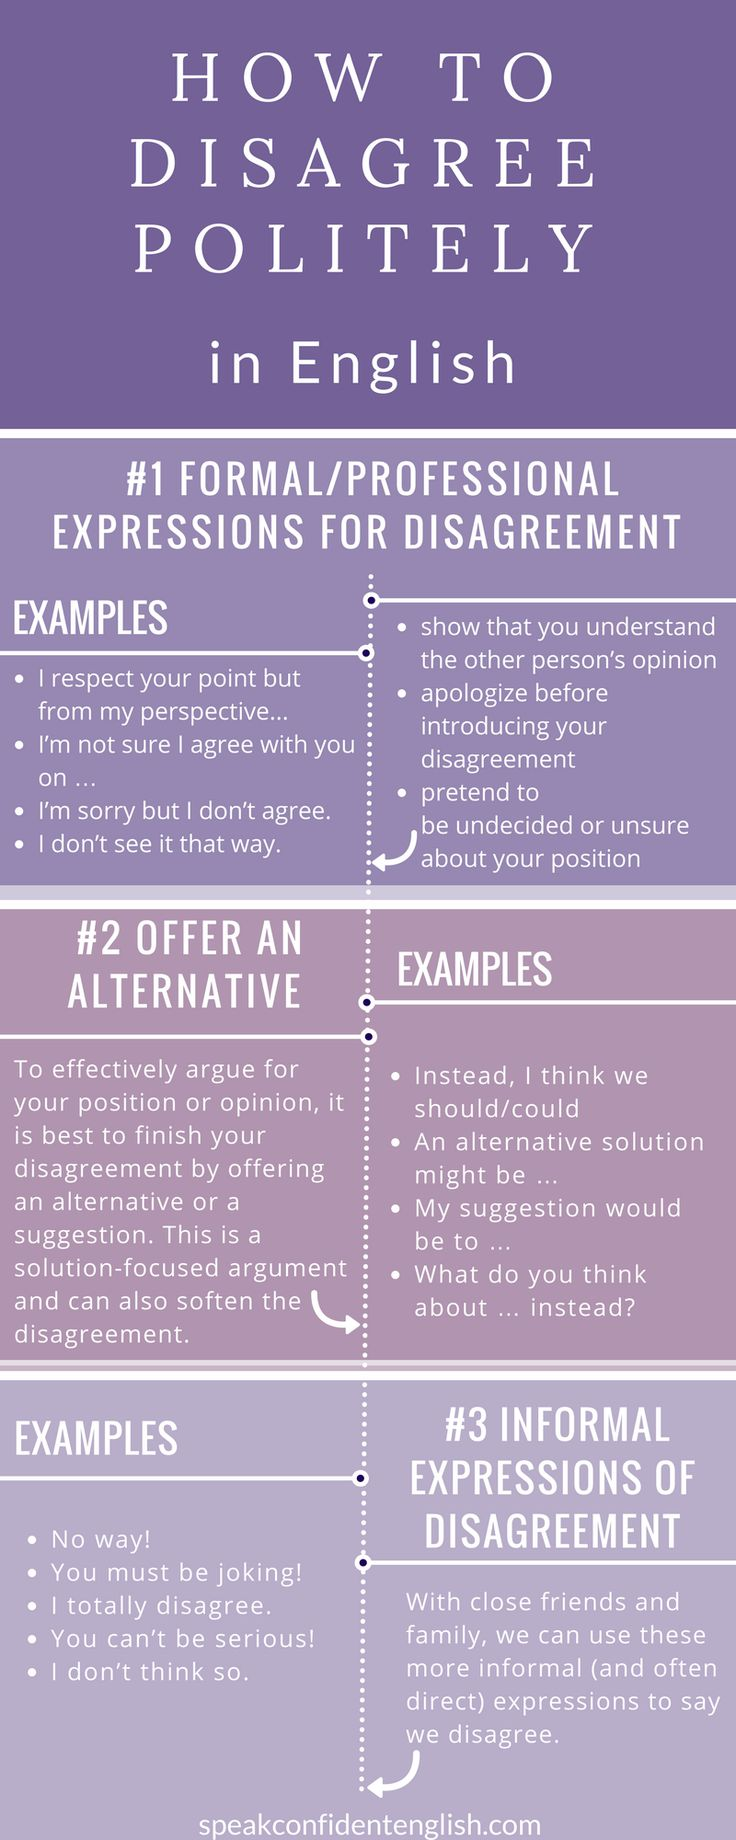 Business English. Exactly what you need for those disagreements at work! Get the full lesson at:  http://www.speakconfidentenglish.com/disagree-in-english/?utm_campaign=coschedule&utm_source=pinterest&utm_medium=Speak%20Confident%20English%20%7C%20English%20Fluency%20Trainer&utm_content=How%20to%20Disagree%20Politely%20in%20English